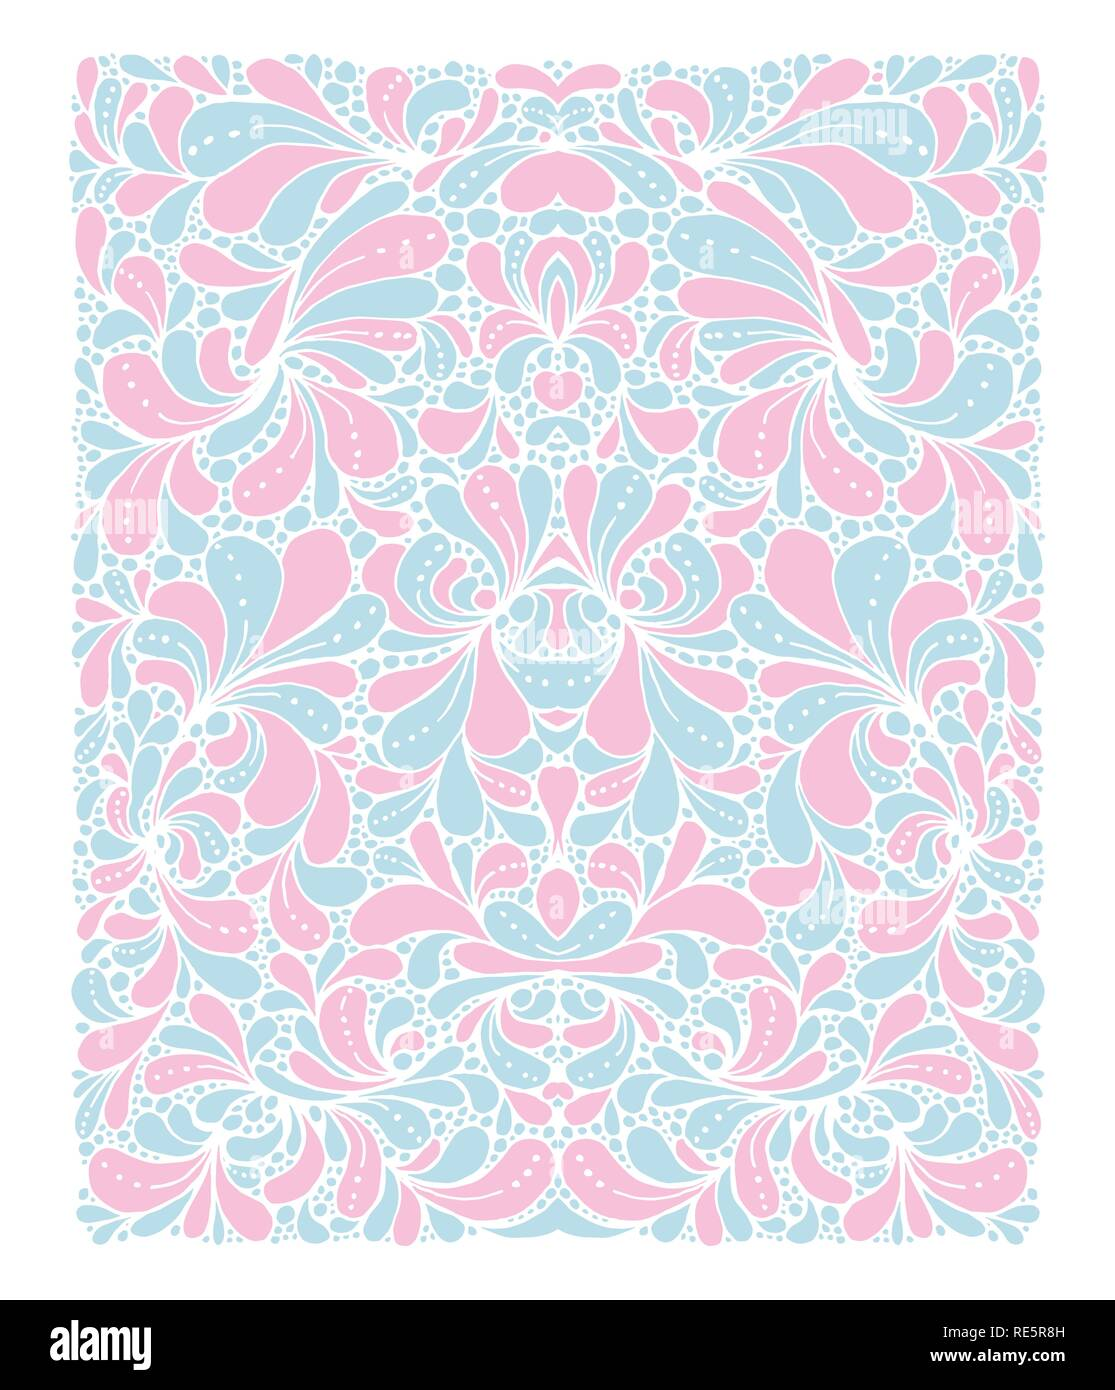 Rose Quartz and Serenity trendy colors of the year 2016 in the pattern. Doodle style ornament with floral elements. For fabric textile or print design - Stock Image